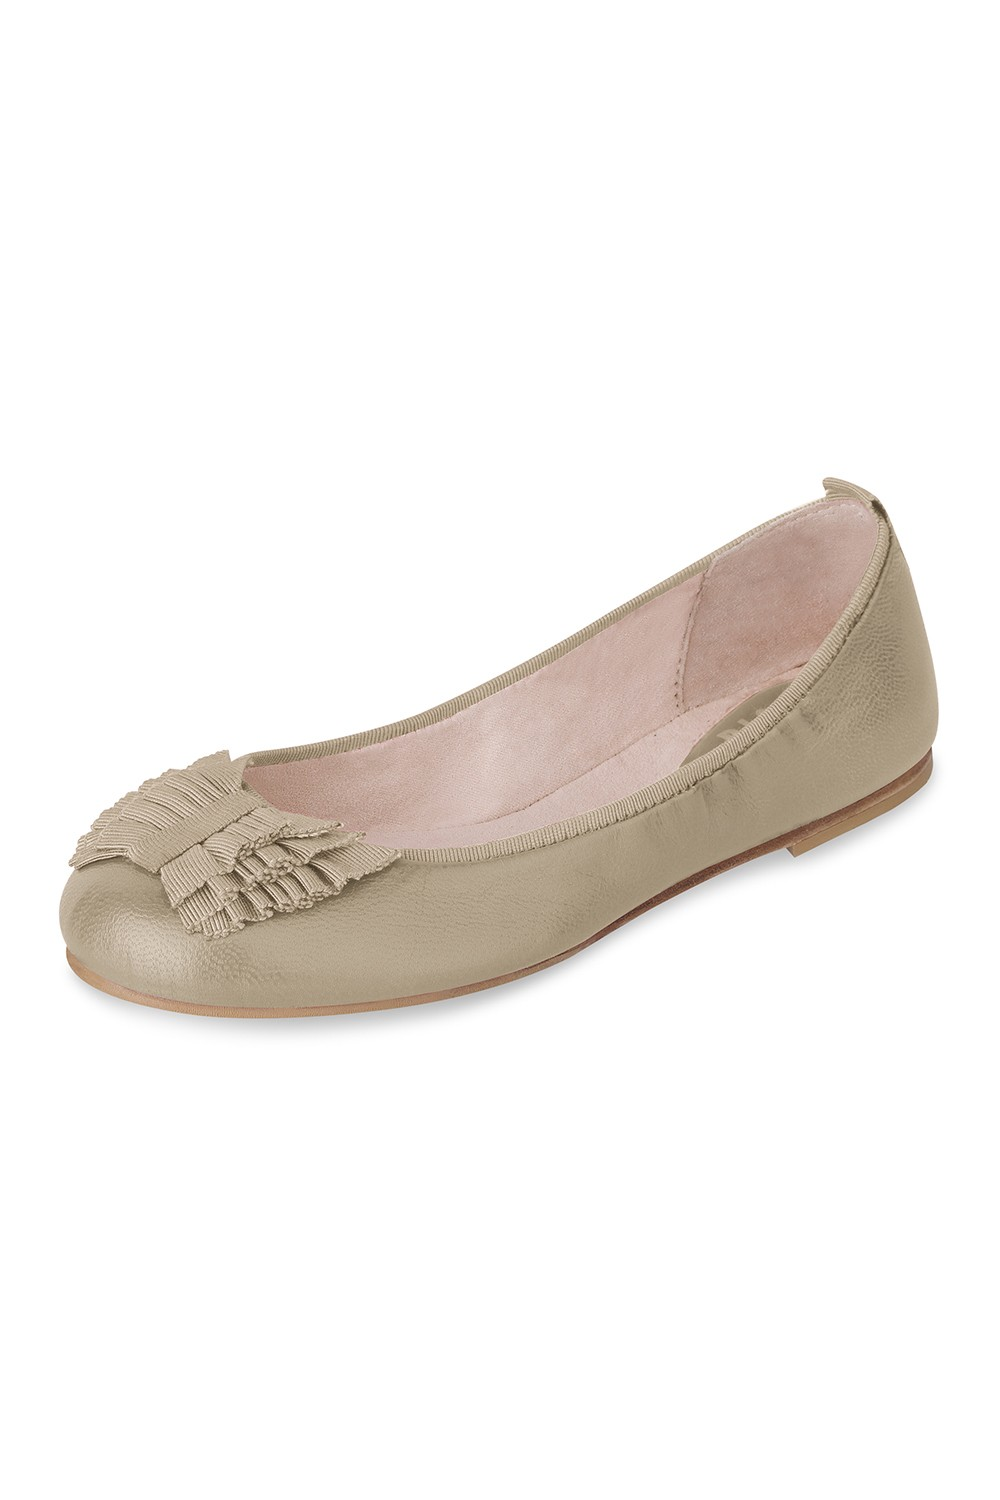 Alize - Girls Girls Fashion Shoes